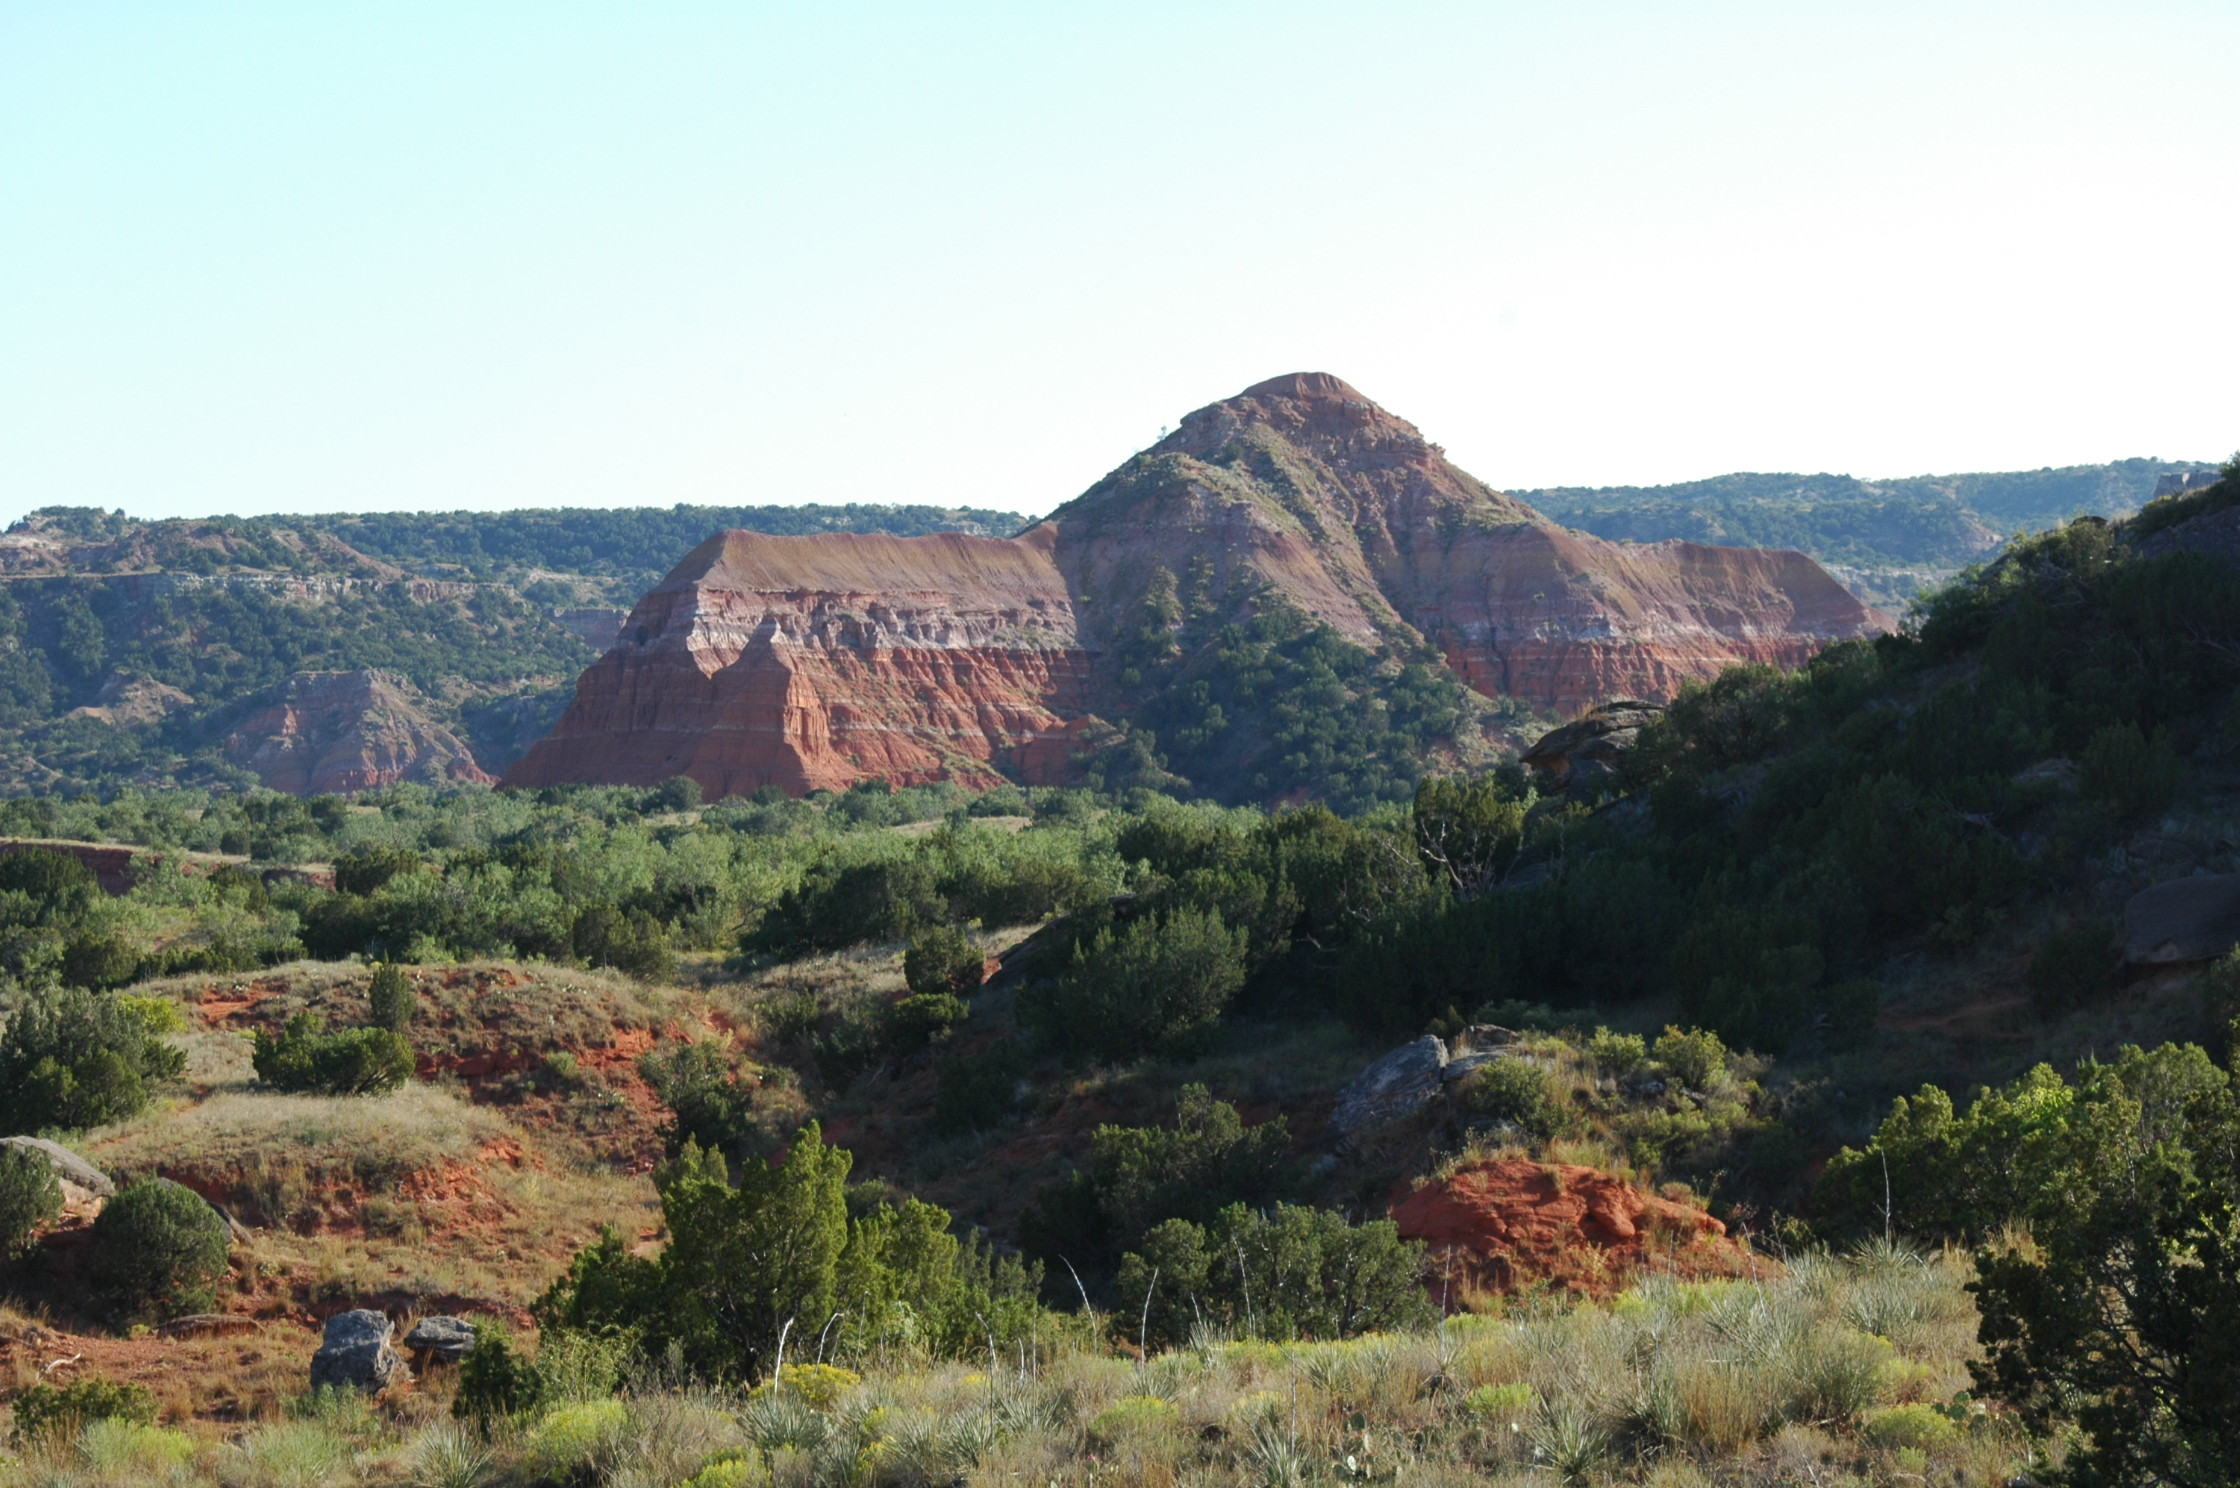 Palo Duro Canyon is a canyon system of the Caprock Escarpment located in the Texas Panhandle near the cities of Amarillo and Canyon.